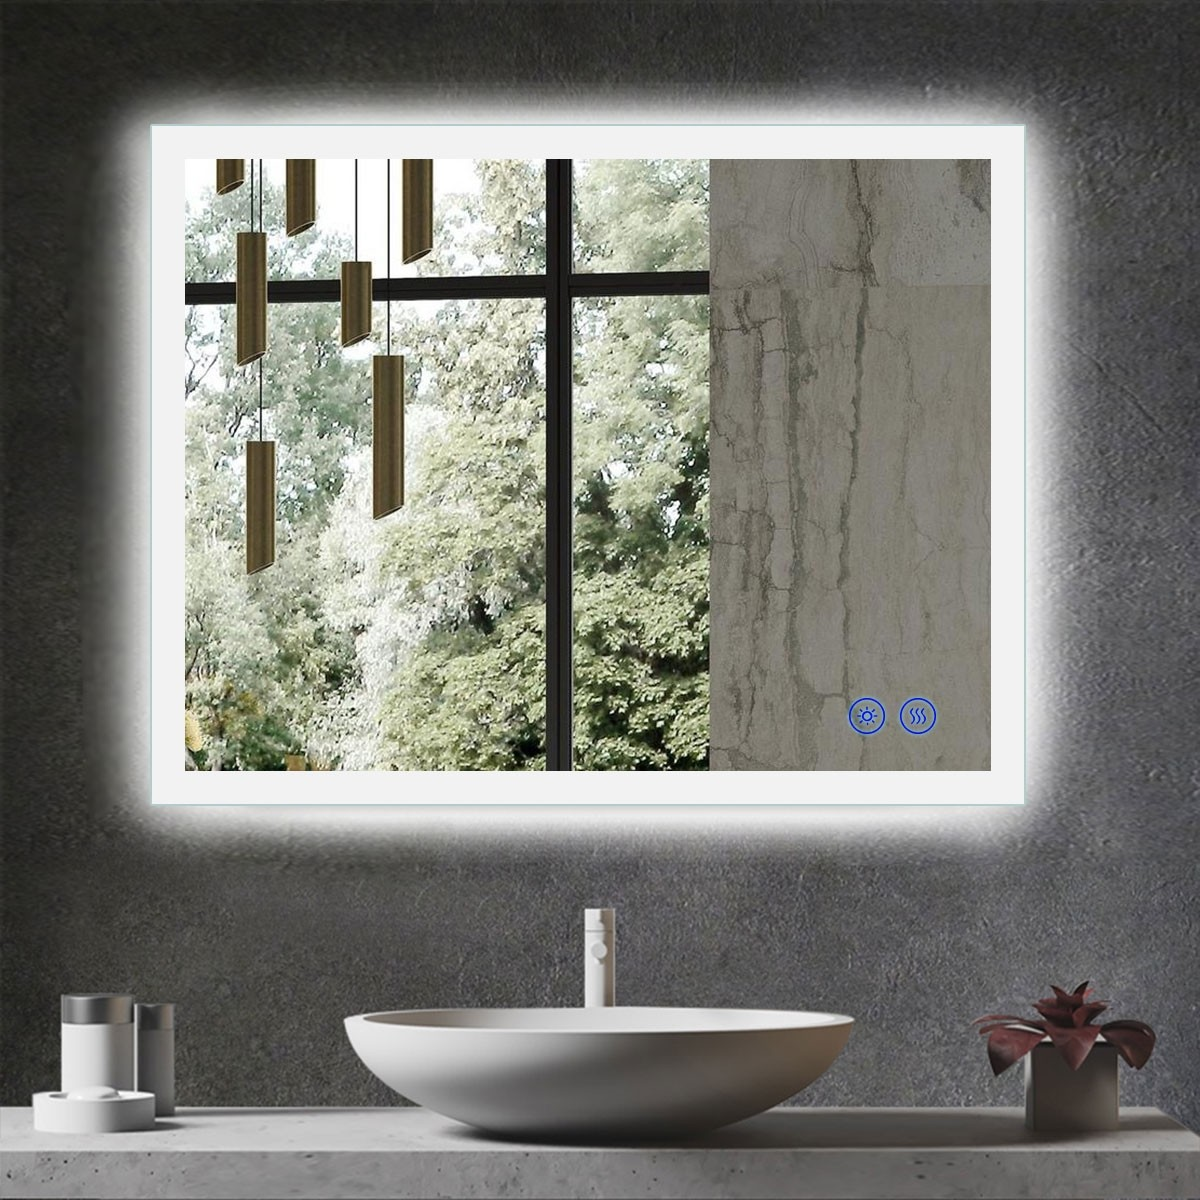 DECORAPORT 36 x 28 Inch LED Bathroom Mirror with Touch Button, Anti Fog, Dimmable, Vertical & Horizontal Mount (D113-3628)